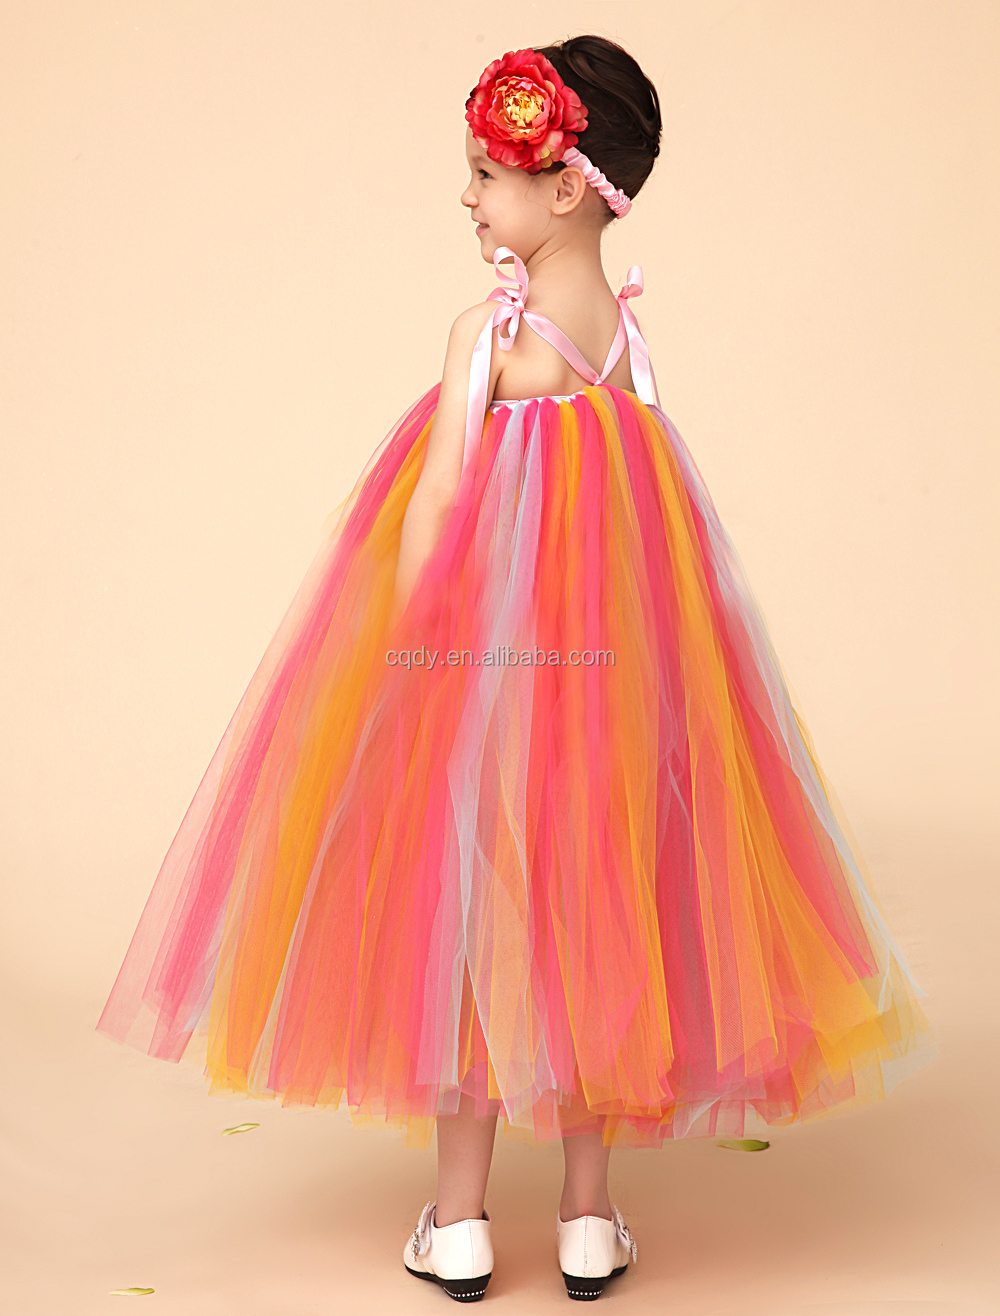 Modern dress advantages - Genuine Colorful Simple Style Kids Girls Dress Modern One Piece Colorful Matching Girl Daily Wear